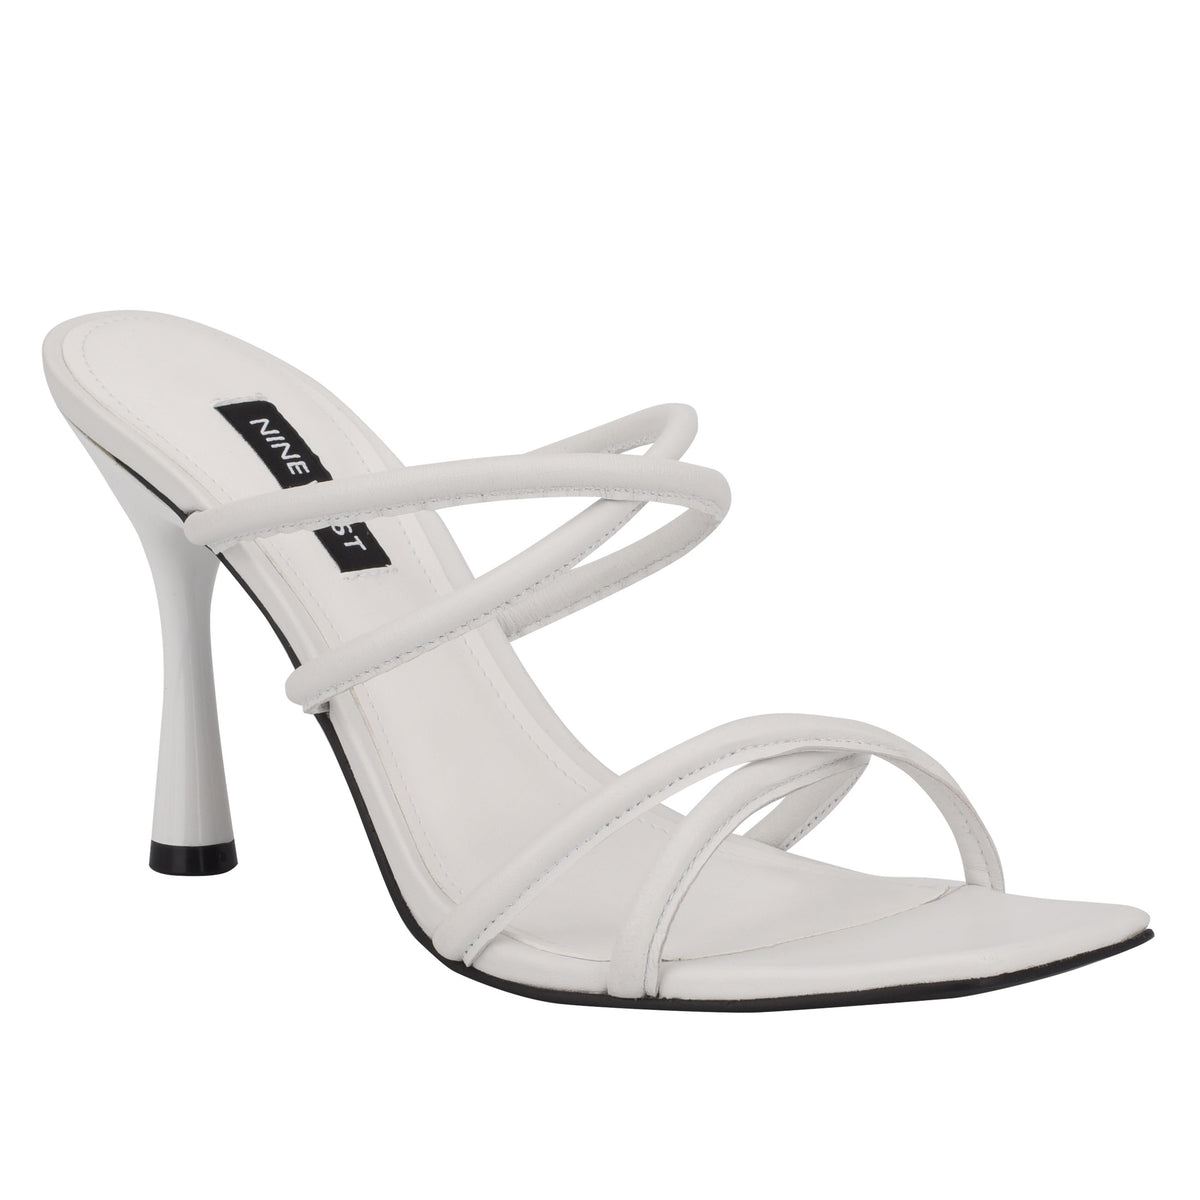 Fabiola Square-Toe Slide Sandals